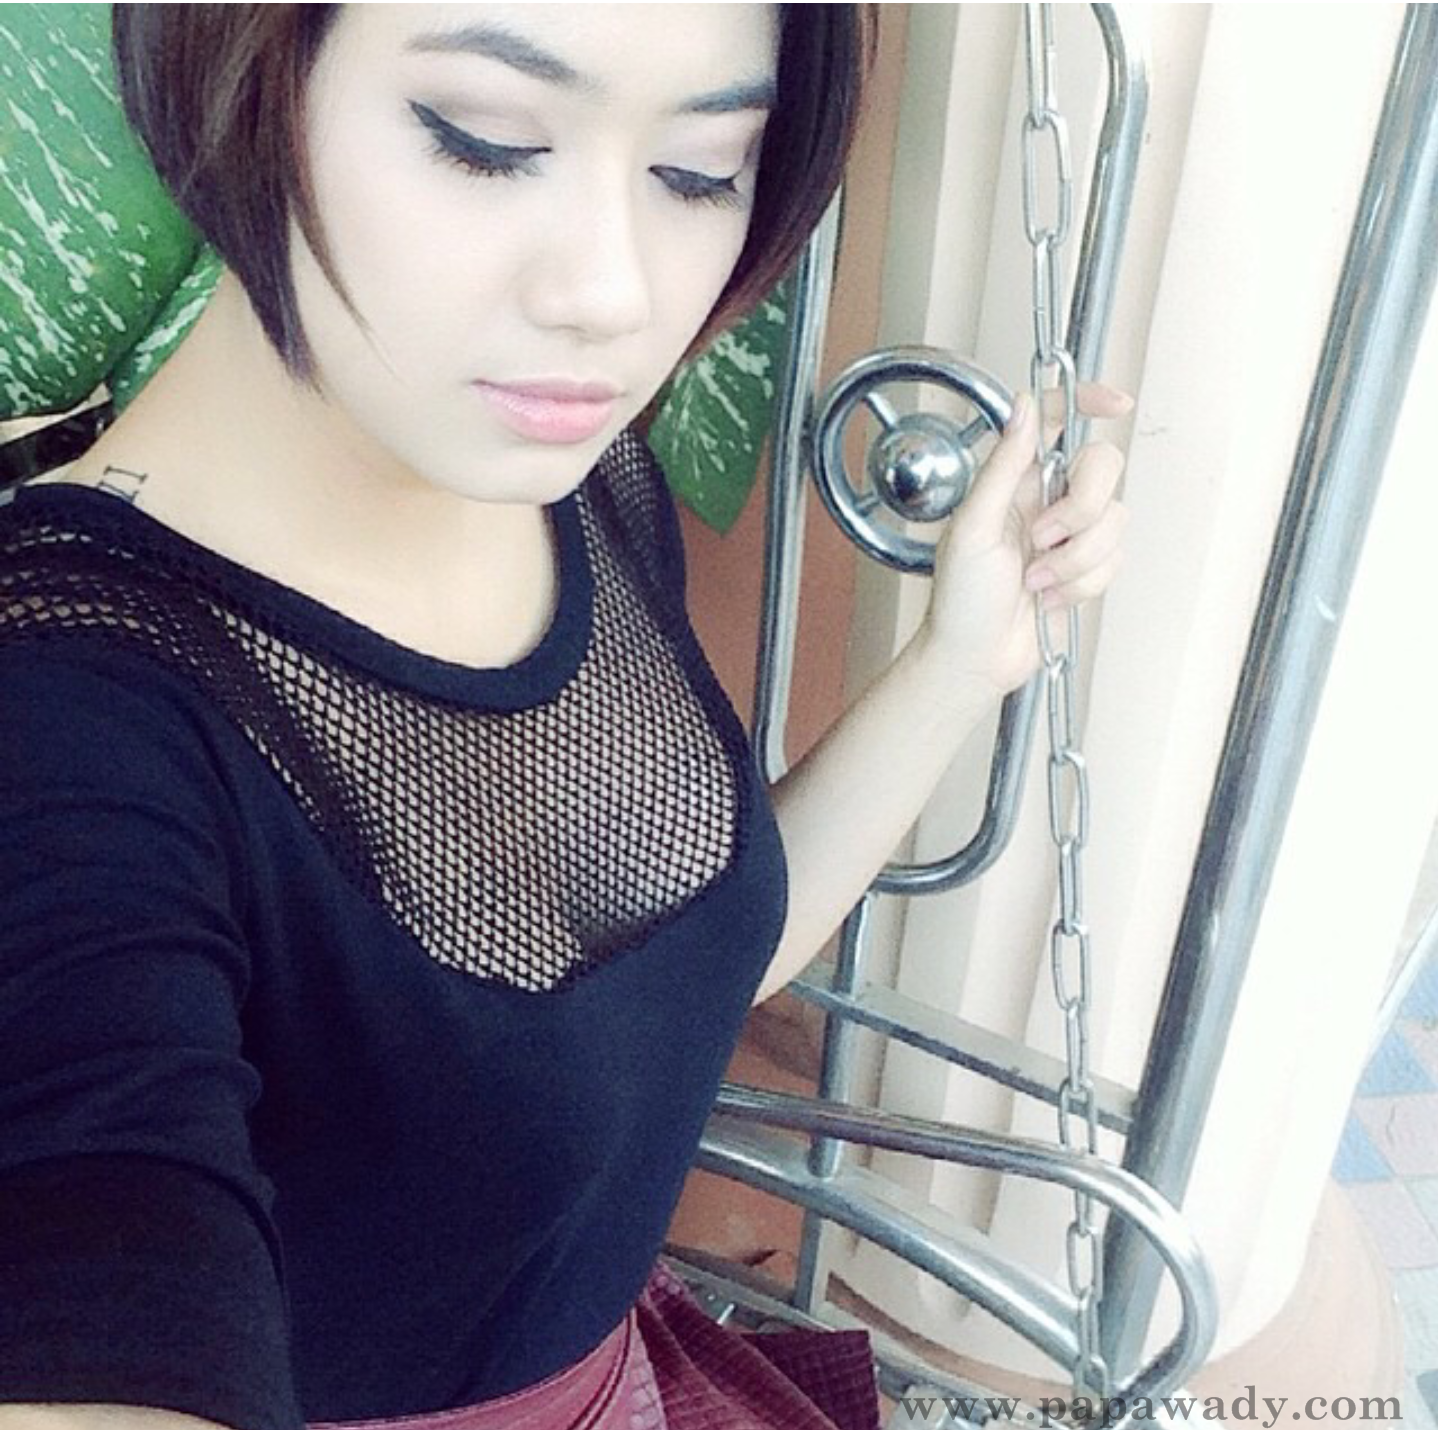 Thinzar Wint Kyaw - 10 Selfies Instagram Photos Collection